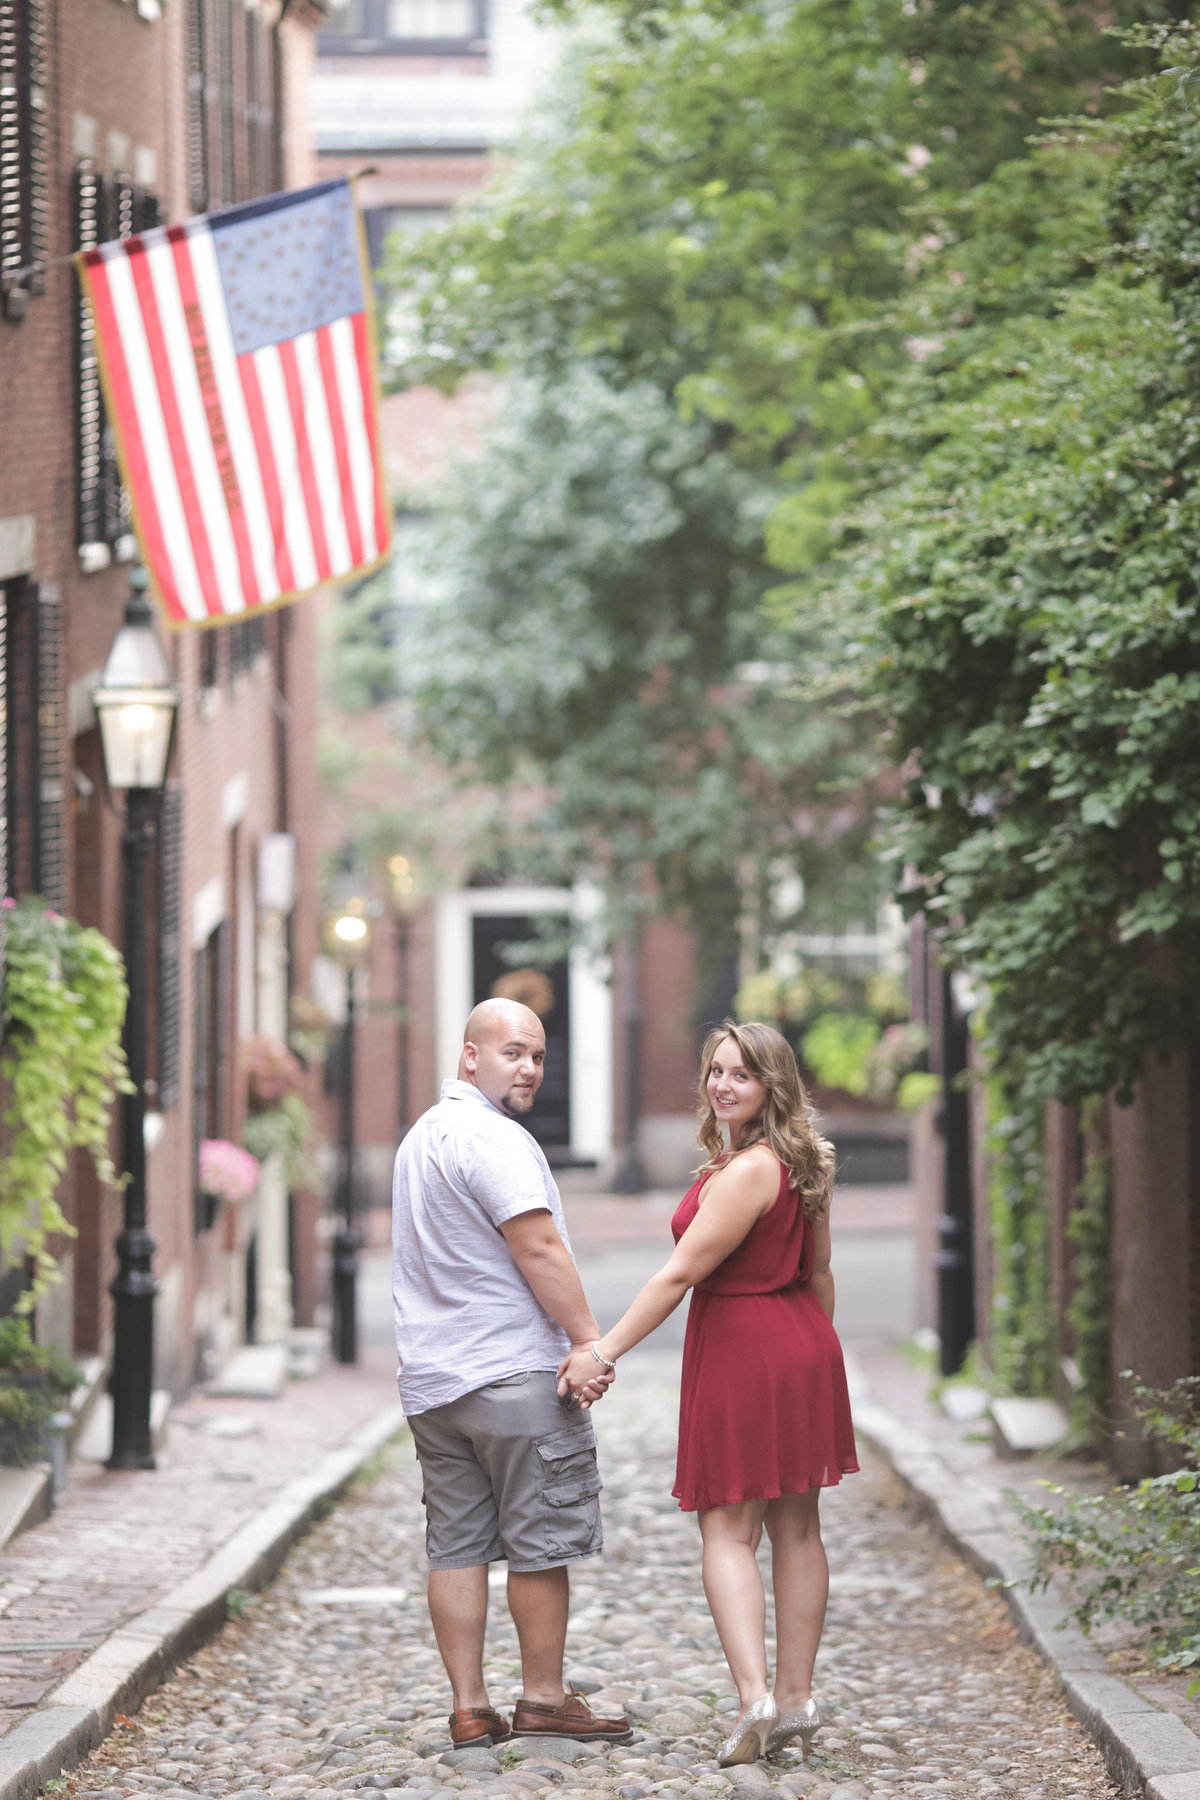 acorn_street_engagement_photos_boston_wedding_photographer4O6A1234